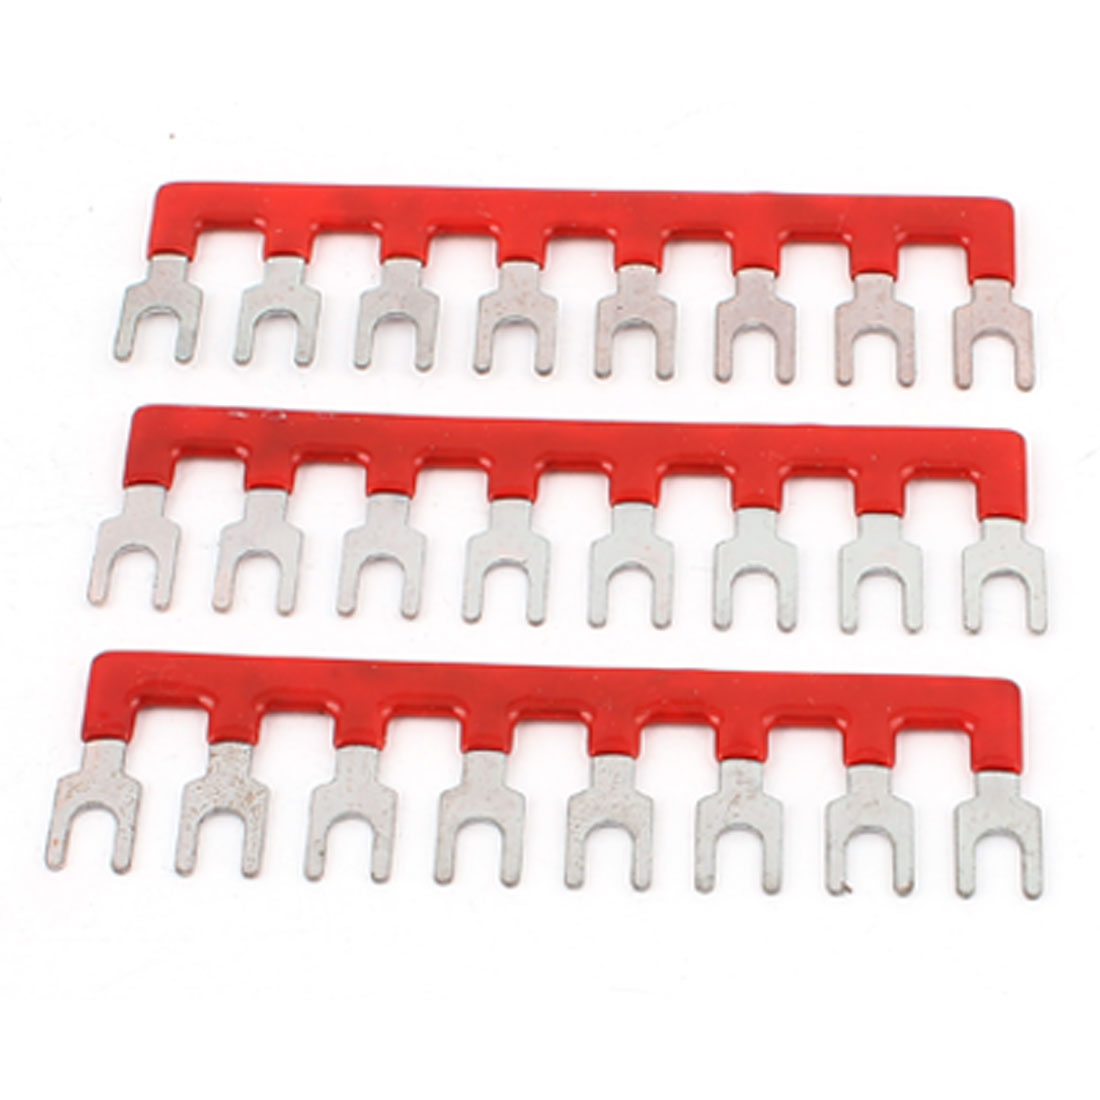 3 Pcs 400V 10A 8 Postions Red Pre Insulated Terminal Barrier Stripes